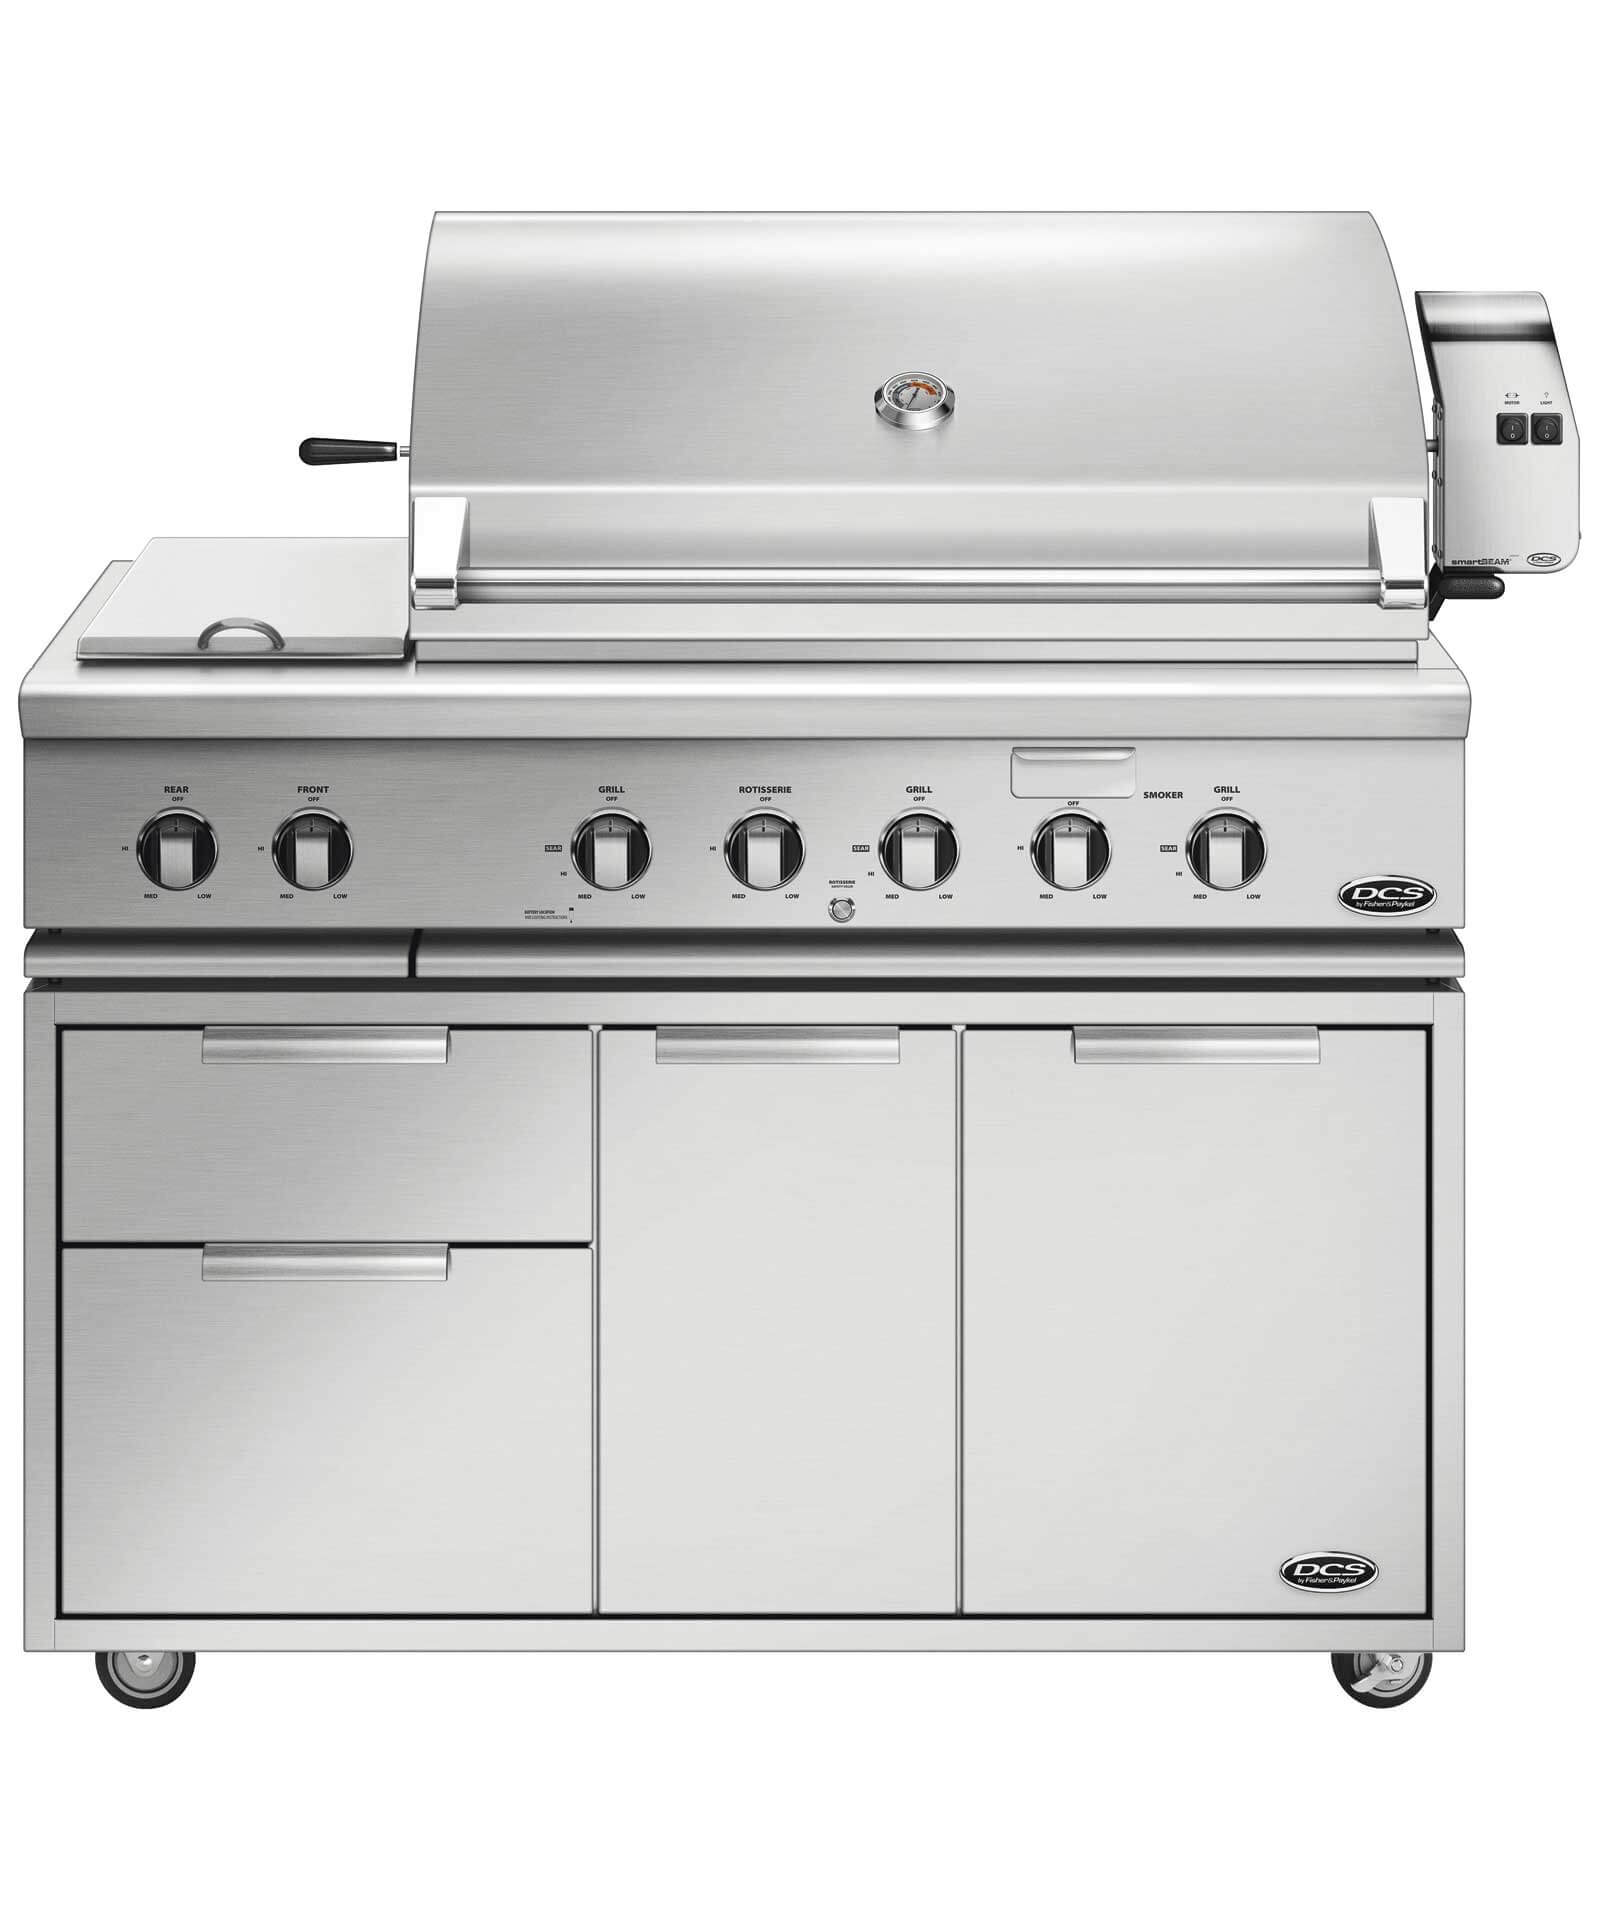 "DCS 48"" Series 7 Grill with Integrated Side Burners, Natural Gas"